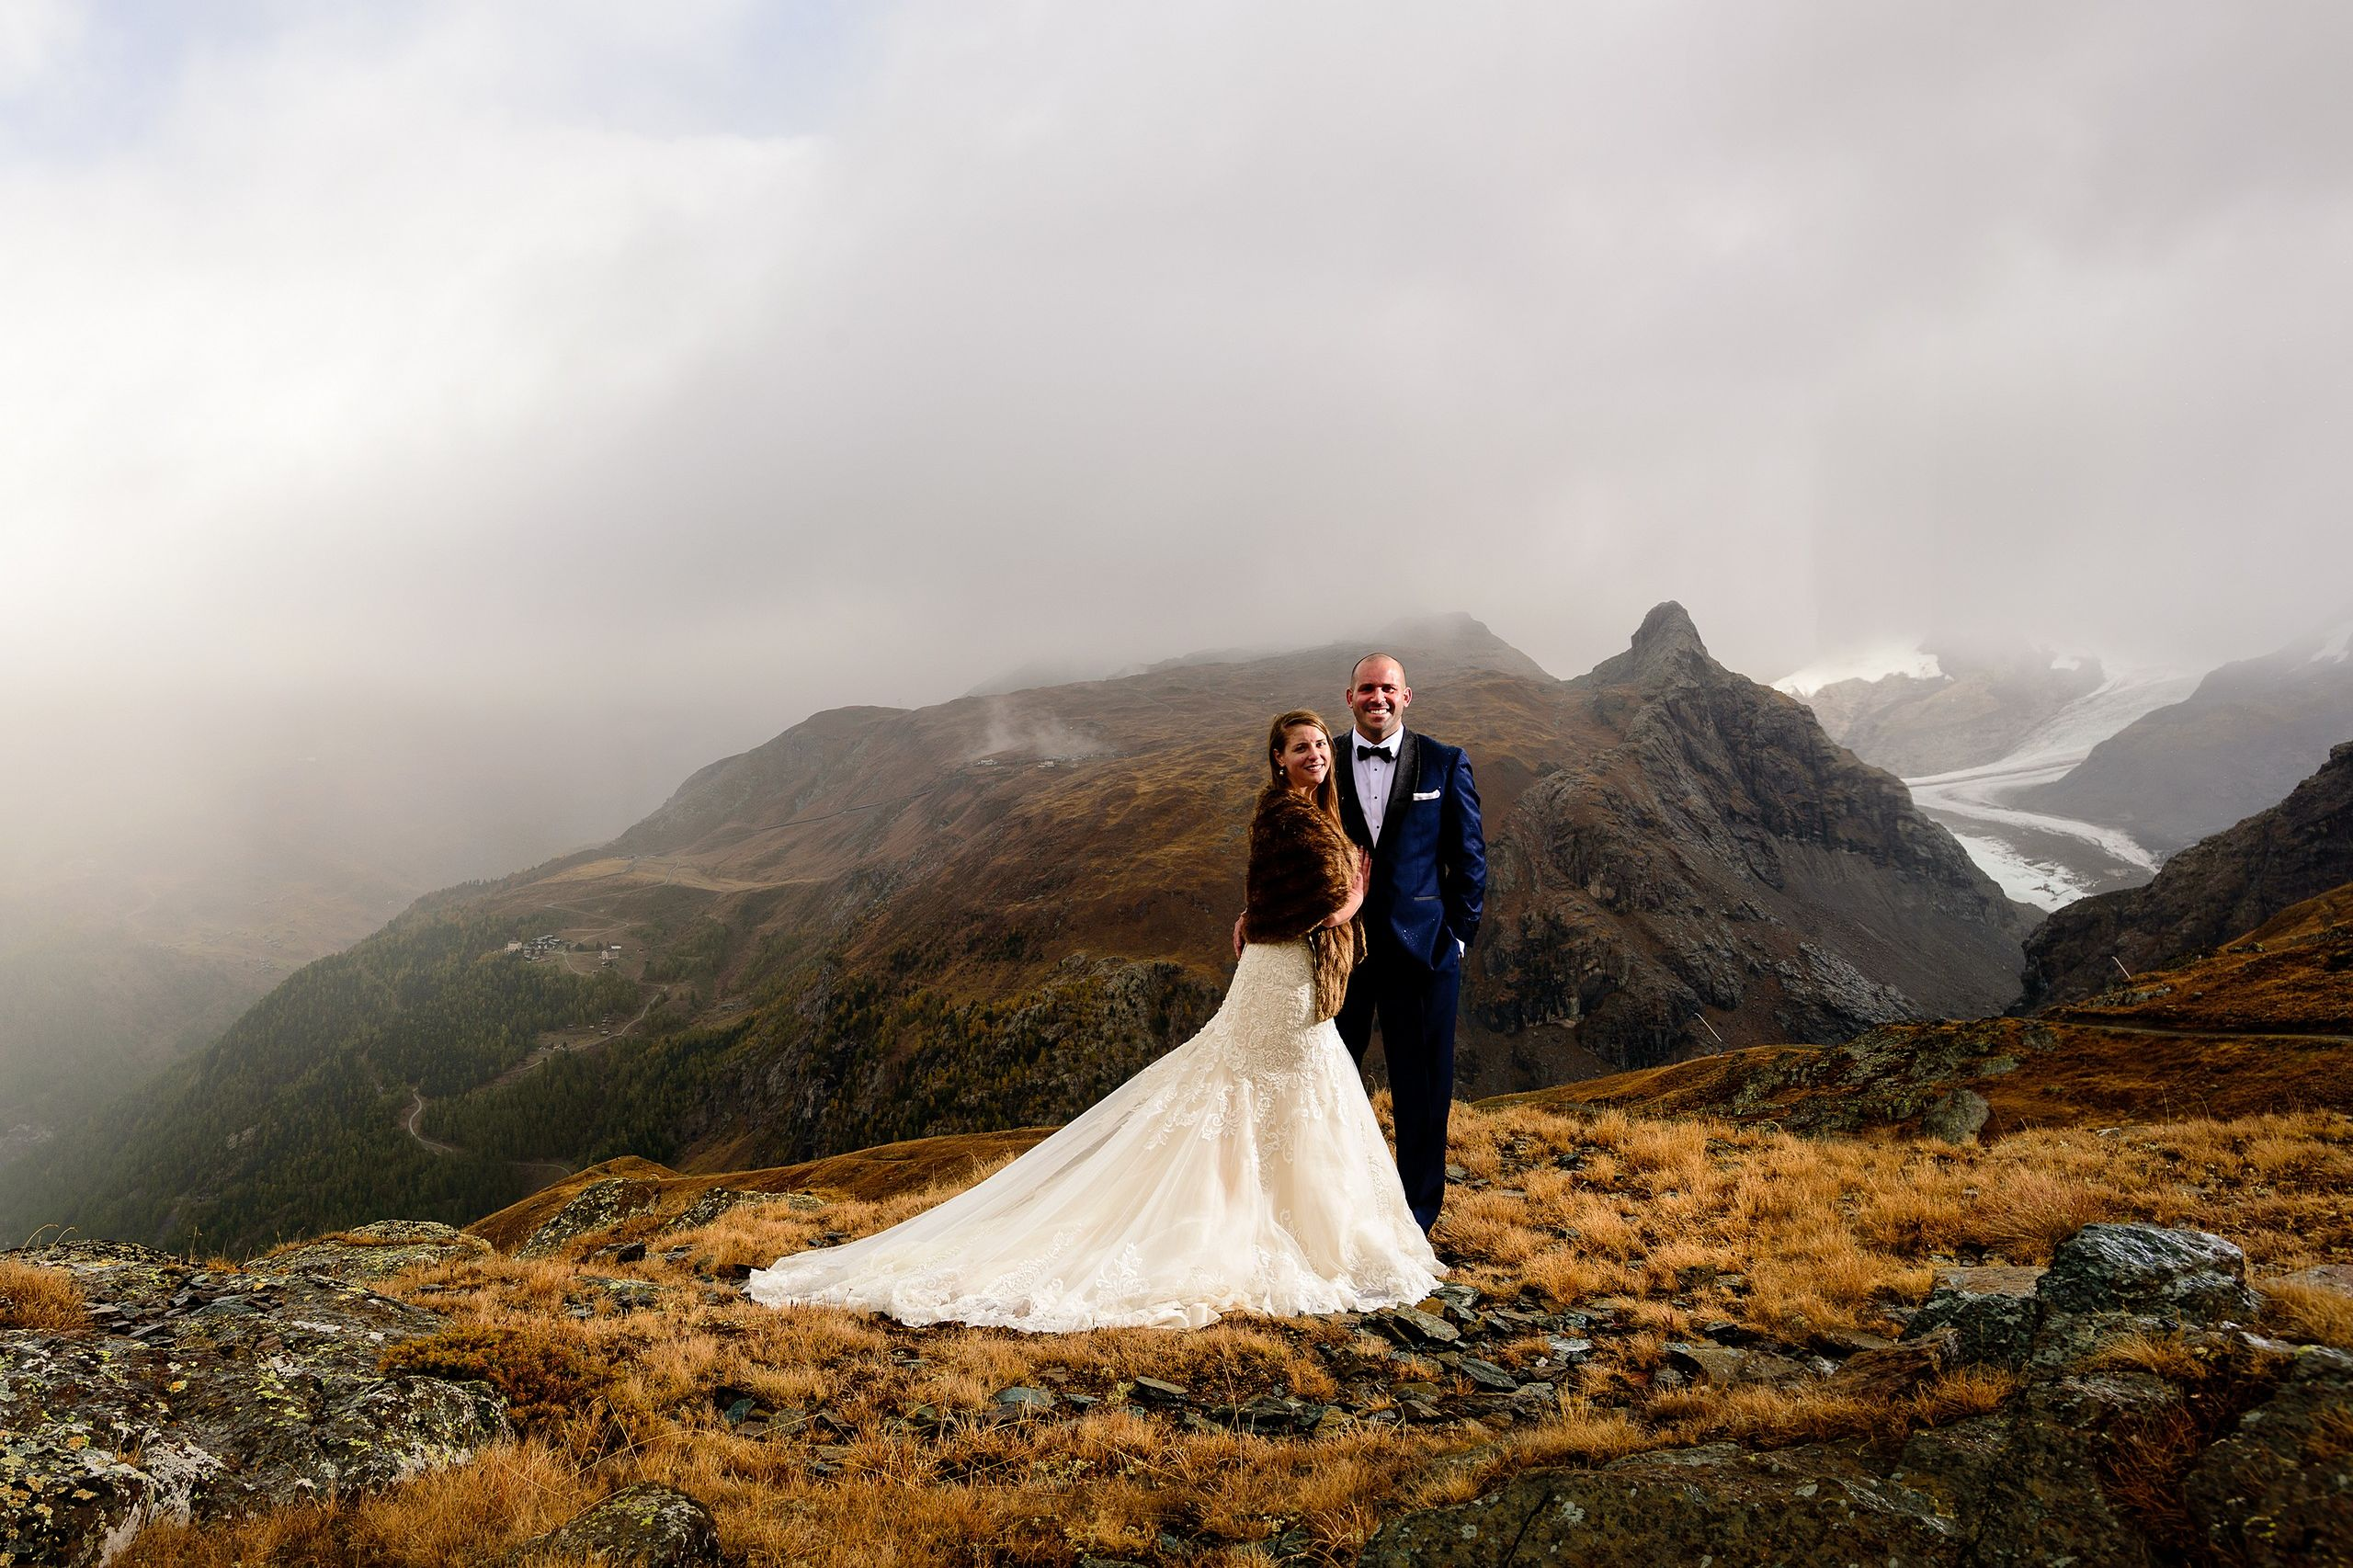 Summer zermatt wedding 1